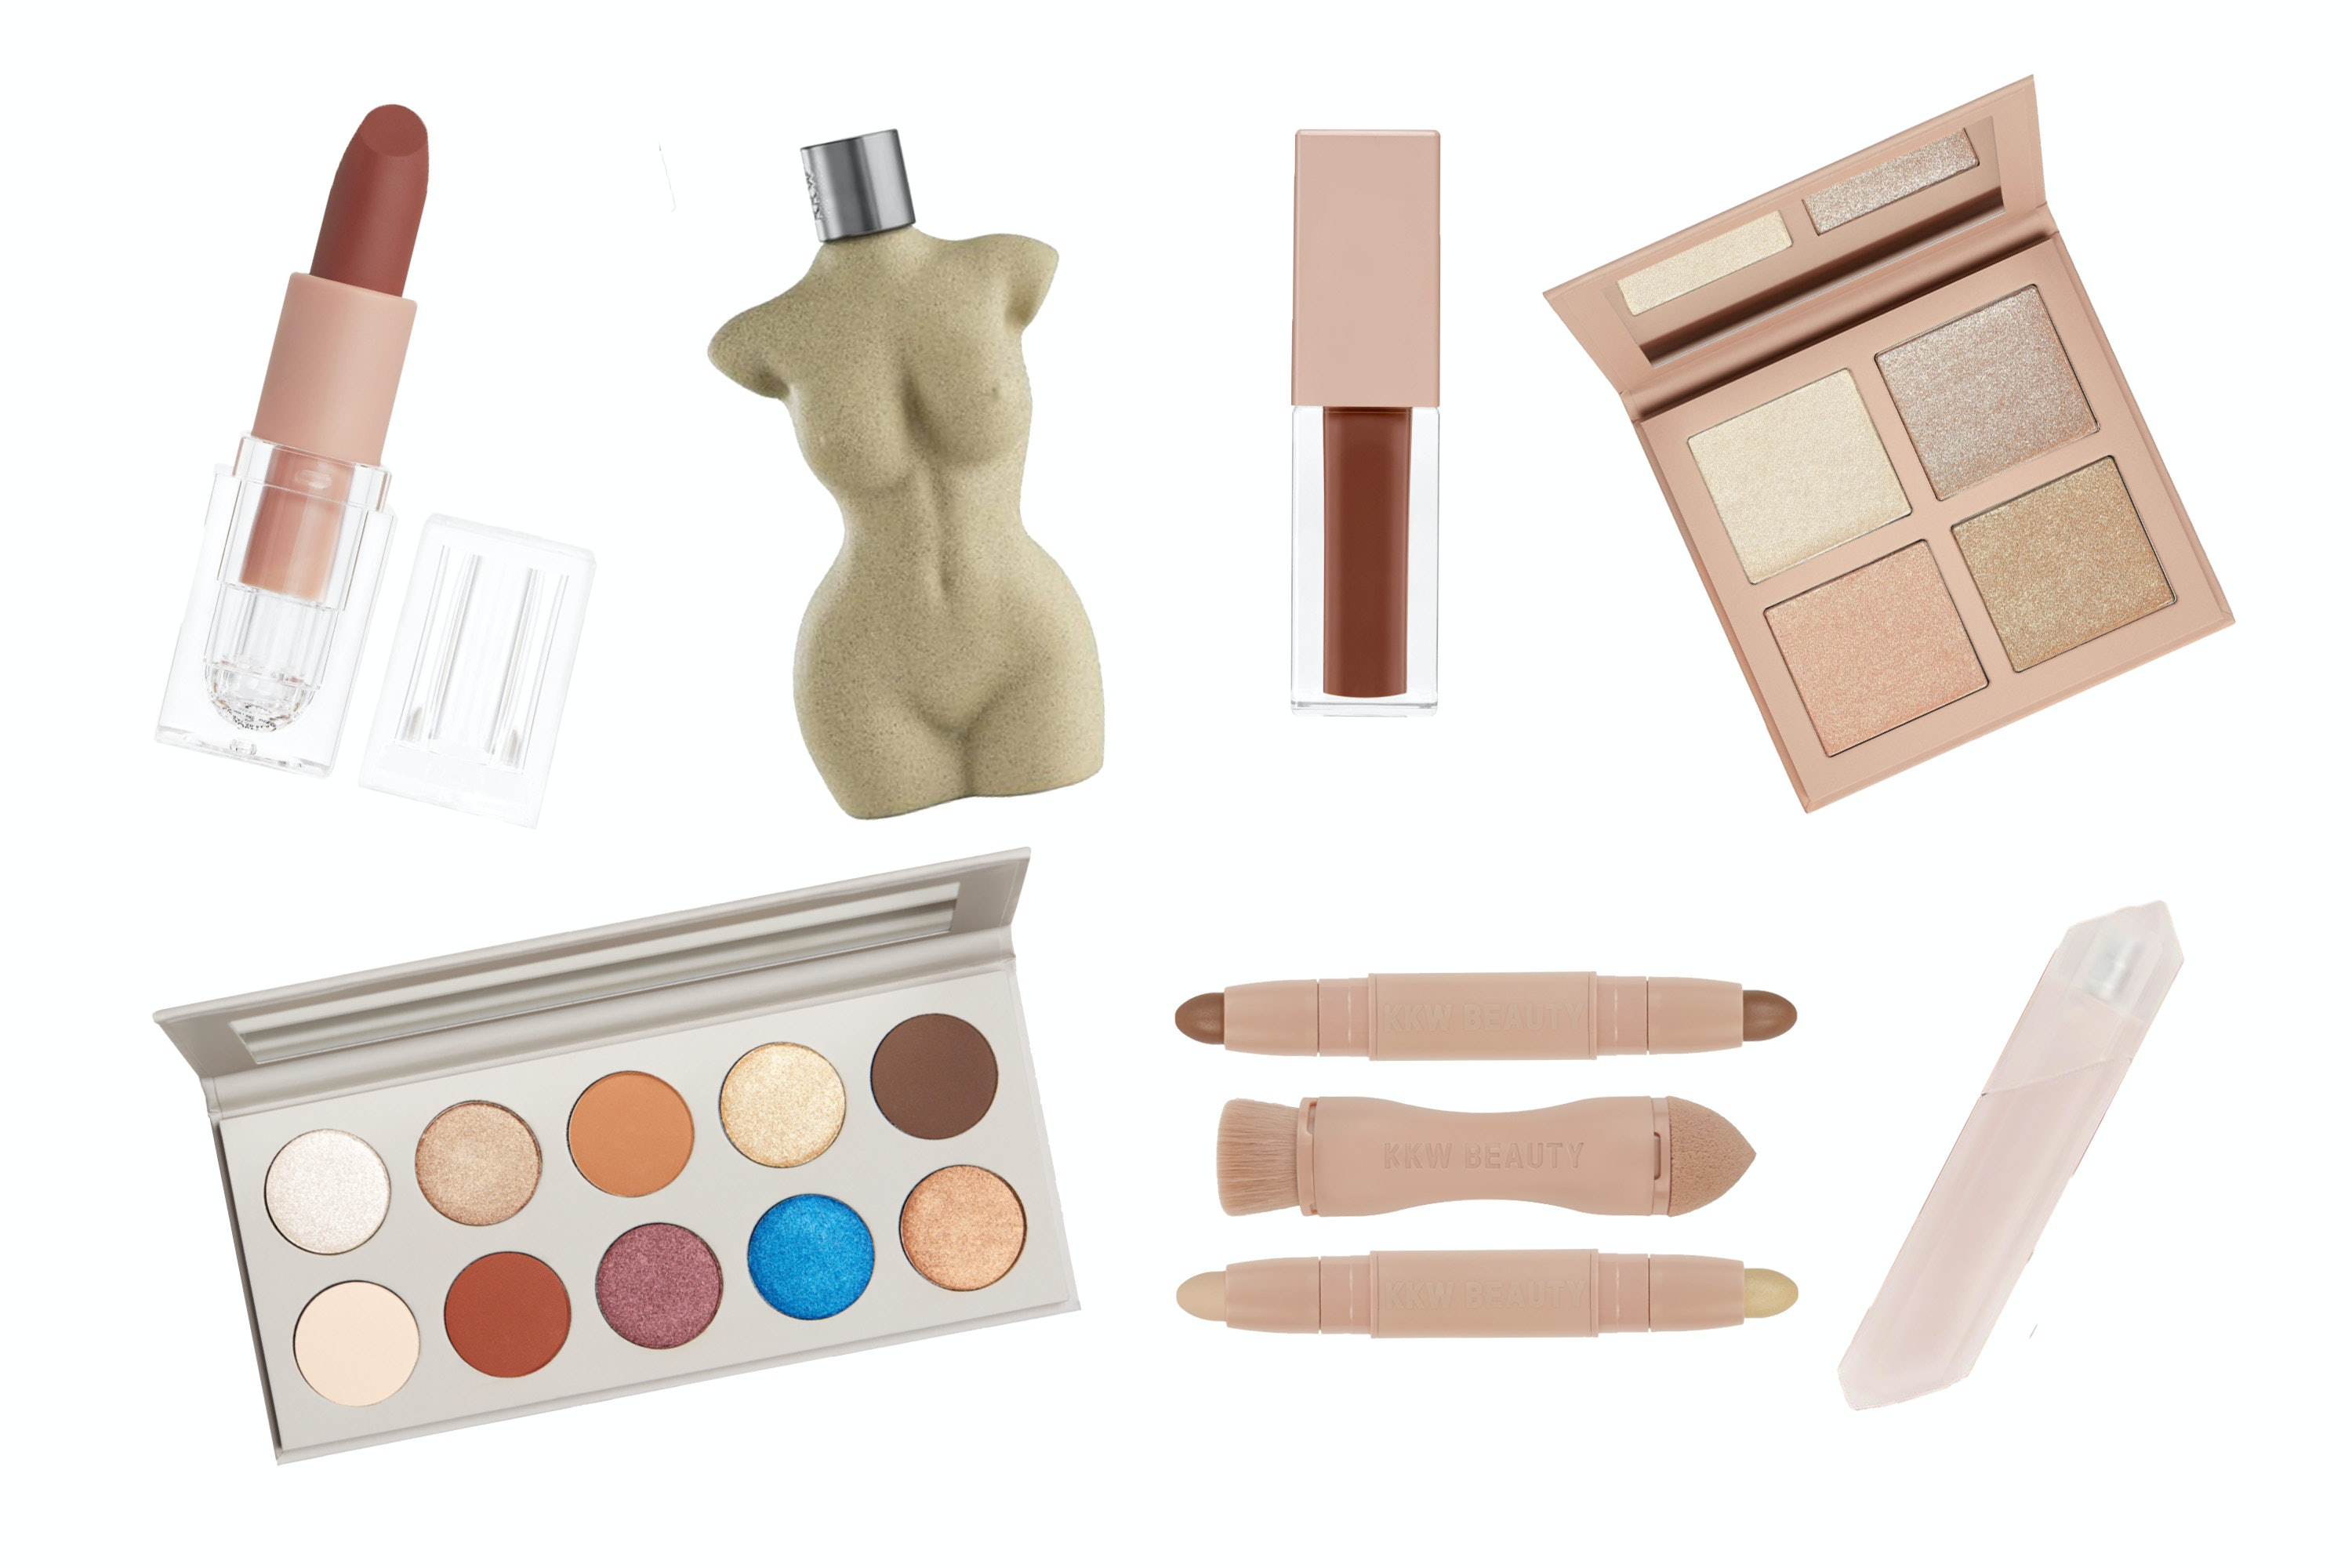 new arrival df767 a78d0 A KKW Beauty Pop-Up Shop Is Coming Soon, So Get Ready To Go Broke ...